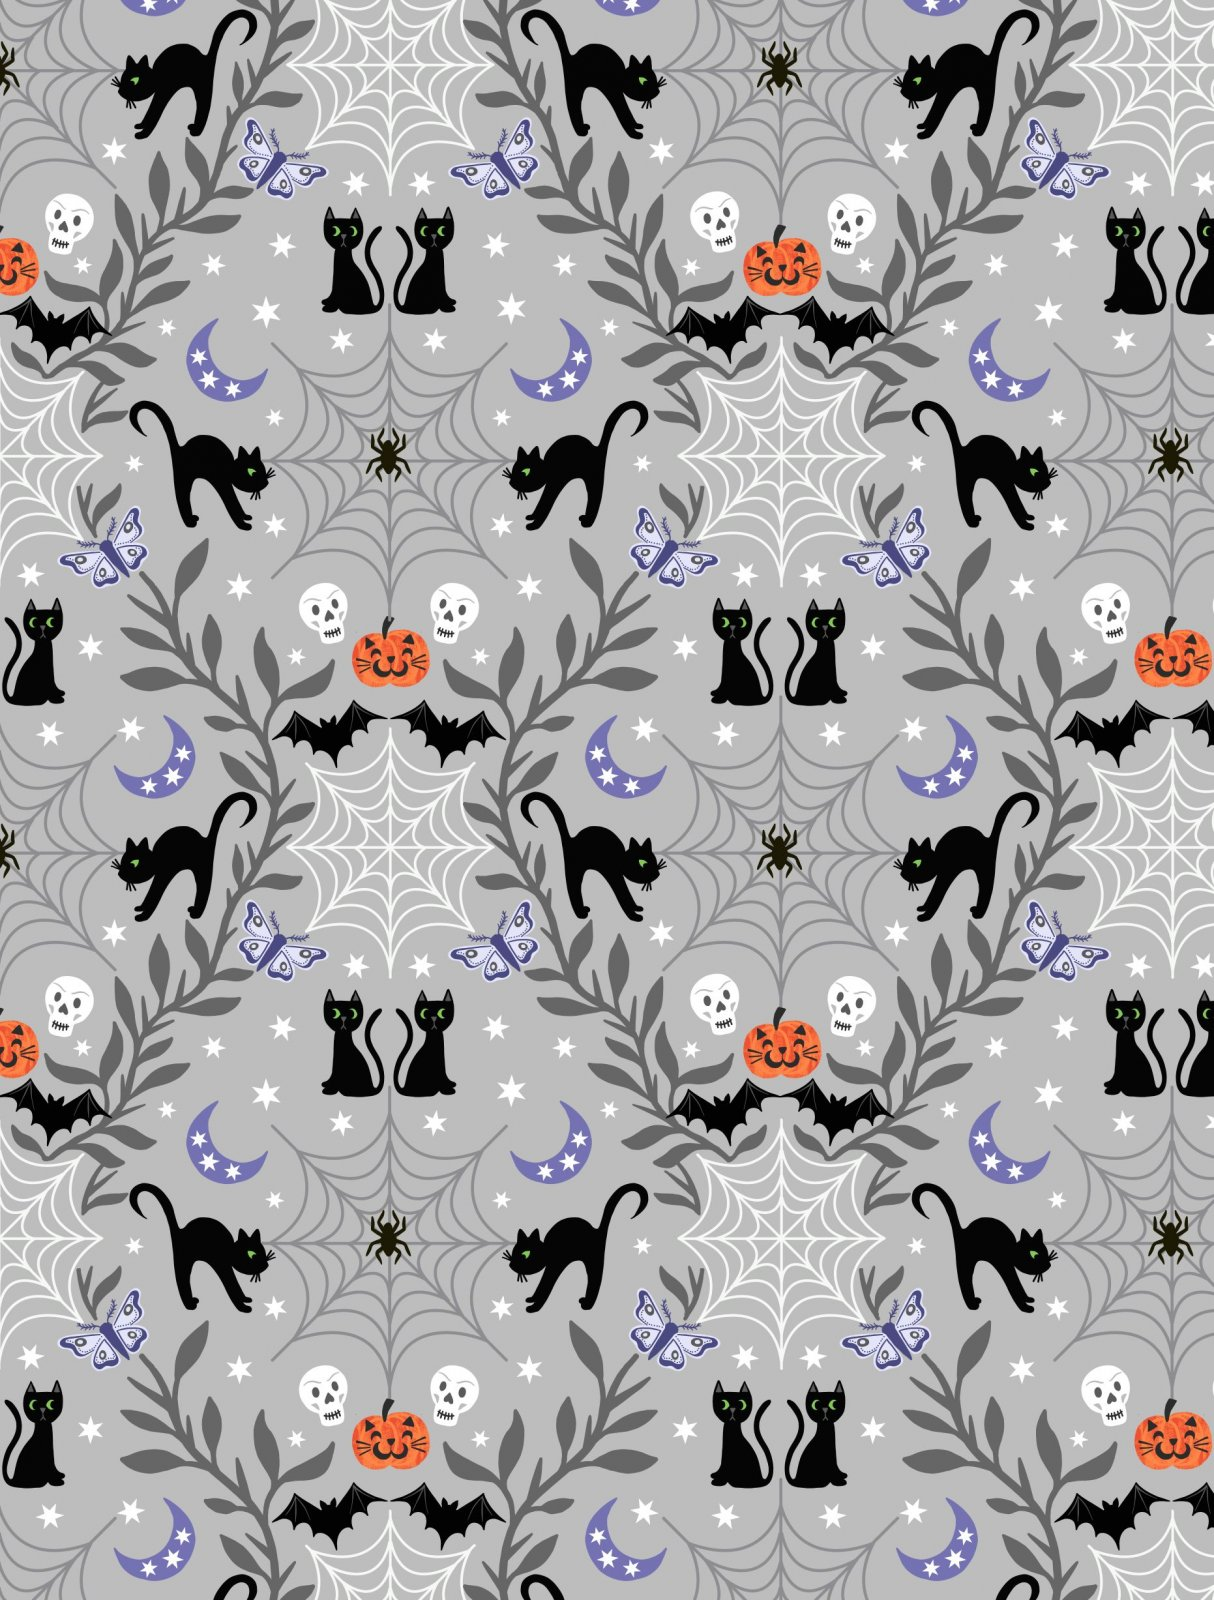 Castle Spooky from Lewis and Irene #A576 1- Cats, Bats and Skeletons on Light Grey